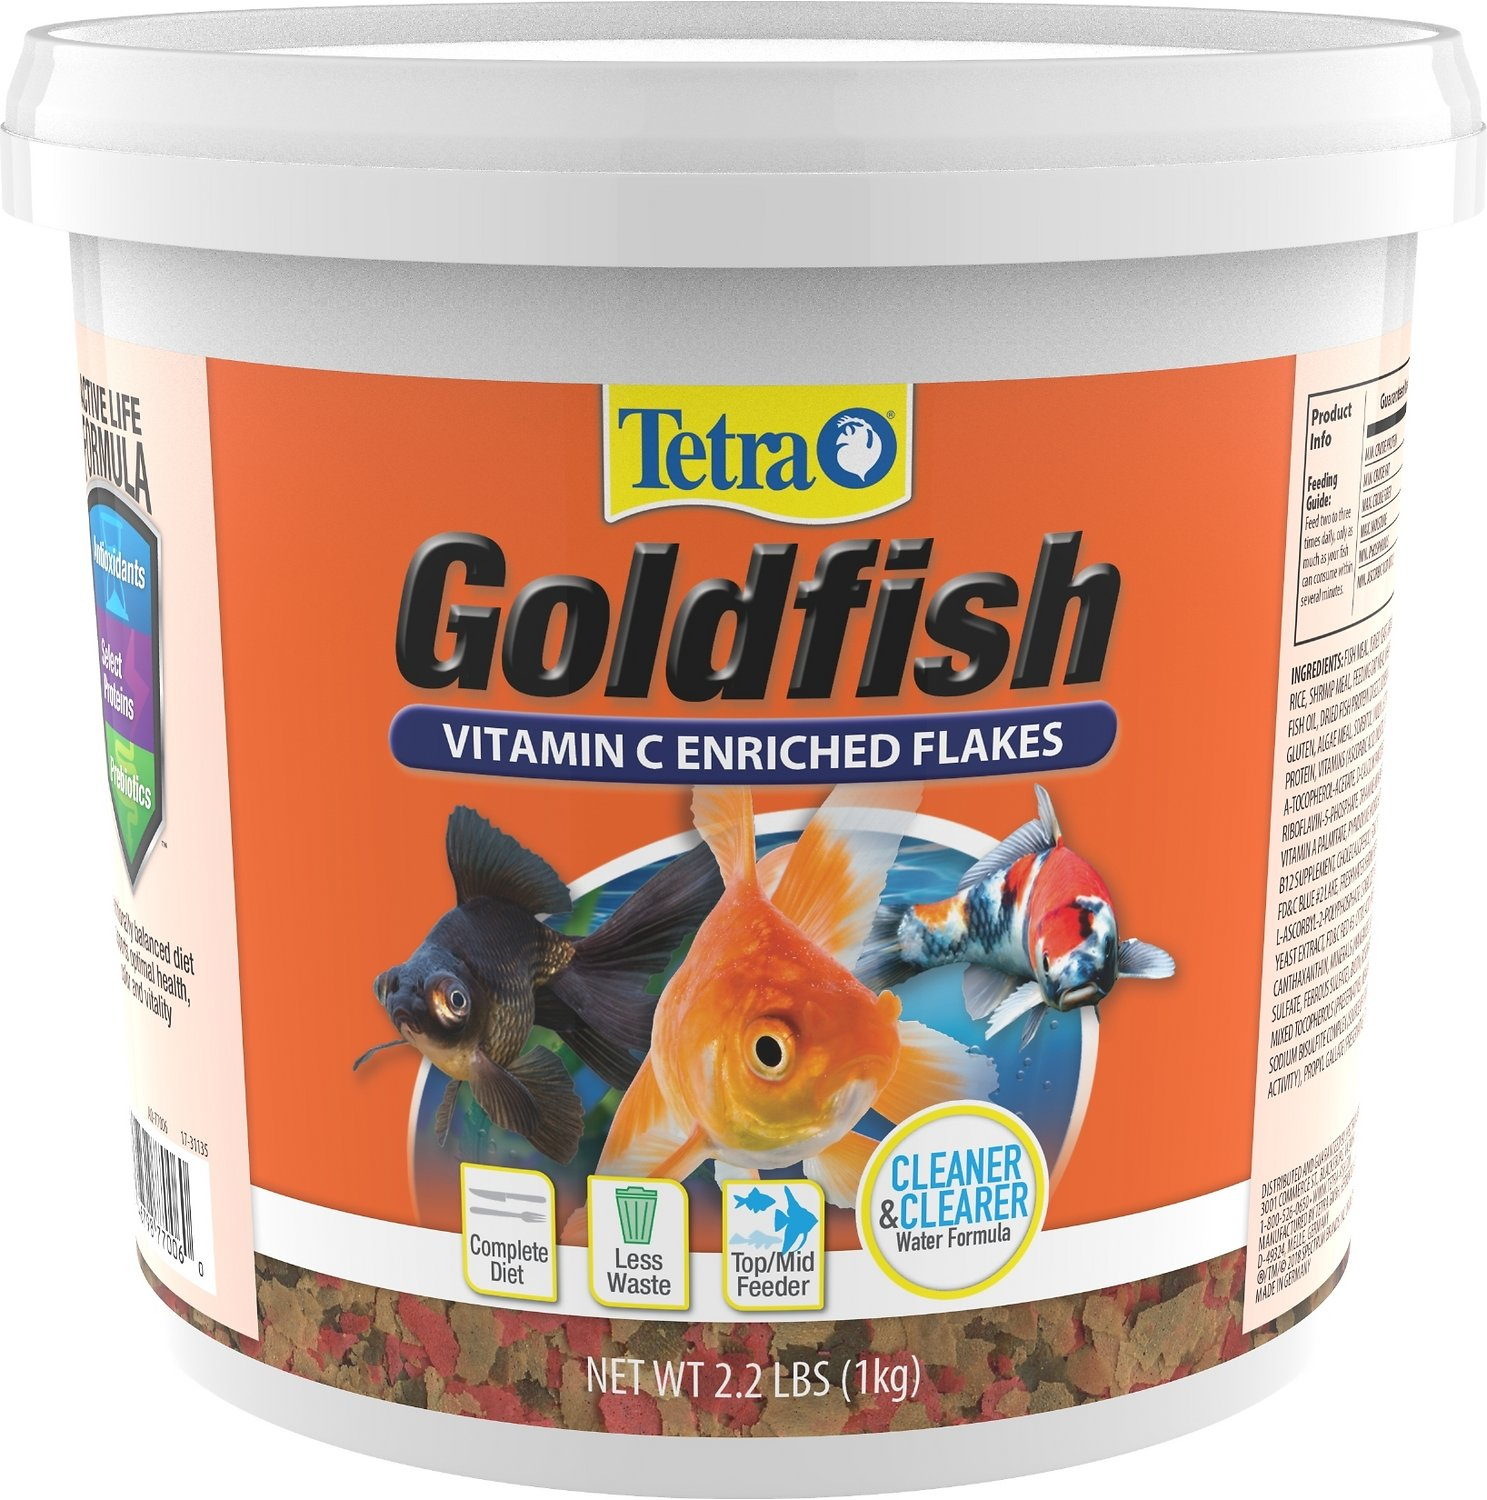 Best Goldfish Food: Flakes and Pellets Your Goldfish Will Love